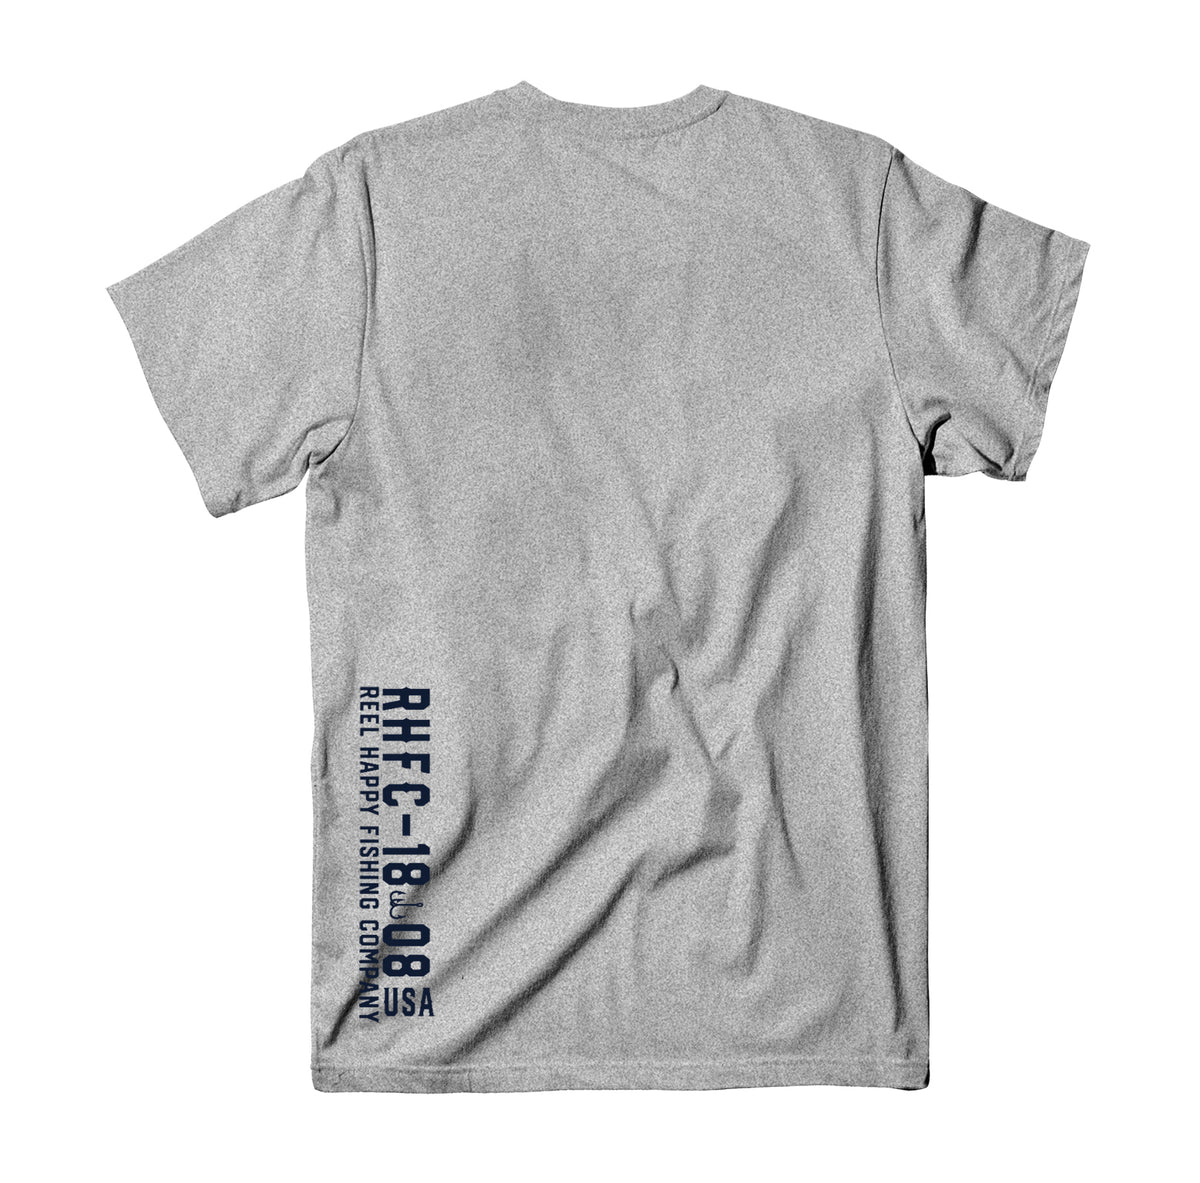 Riverrun T-Shirt - Heather Grey - Reel Happy Co